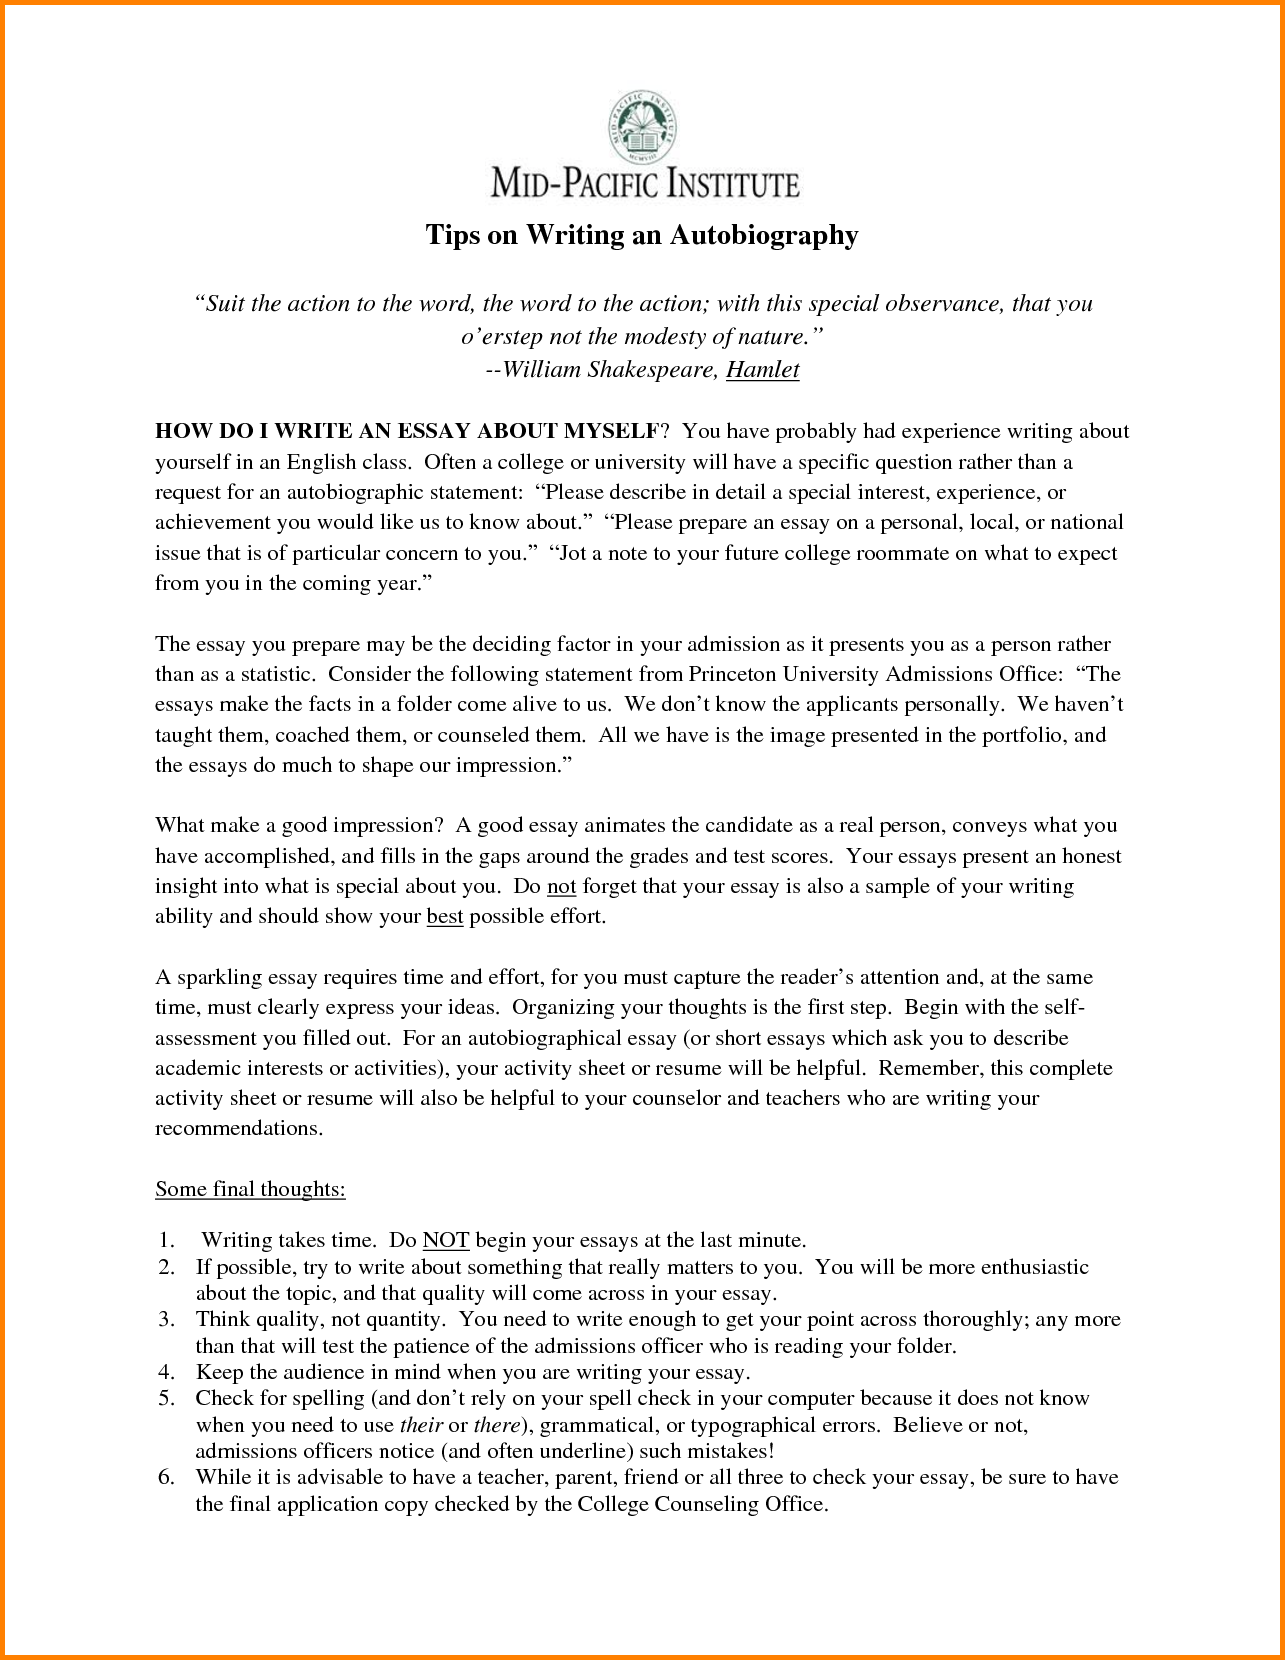 007 Essay Example How To Begin An Start College Application About Yourself Starting L Incredible Write On A Book You Didn't Read Open Paragraph For Full